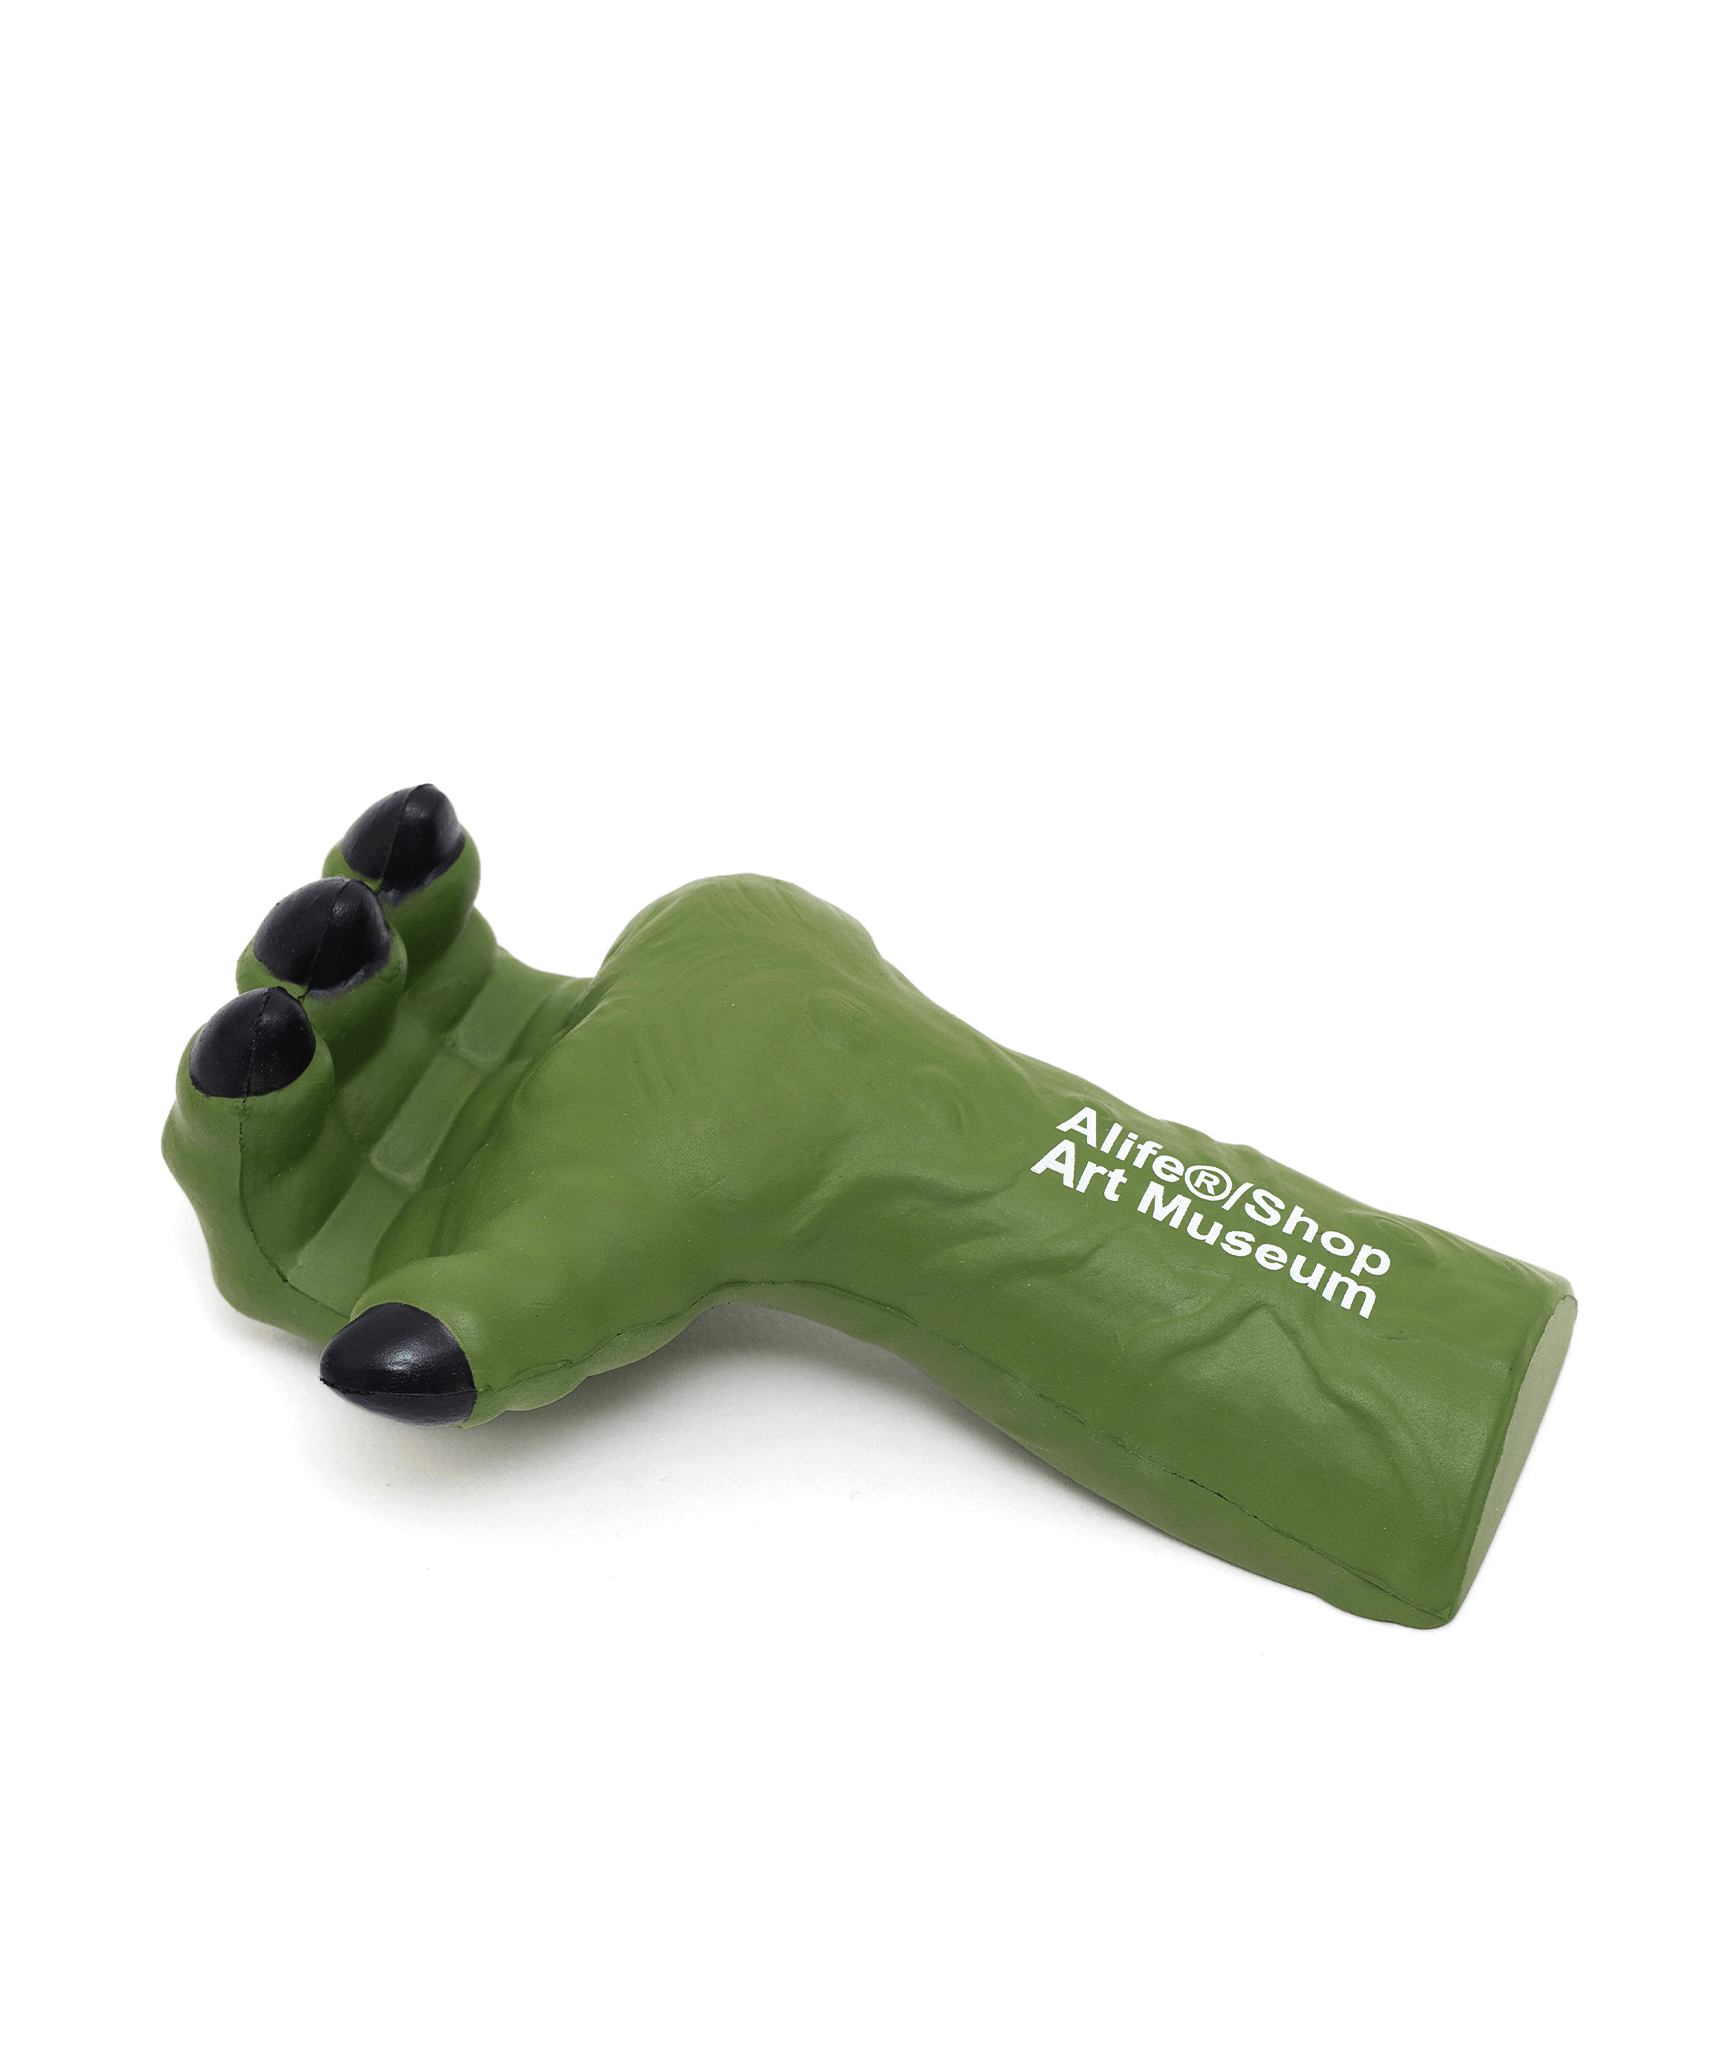 Alife Monster Hand Soft Sculpture